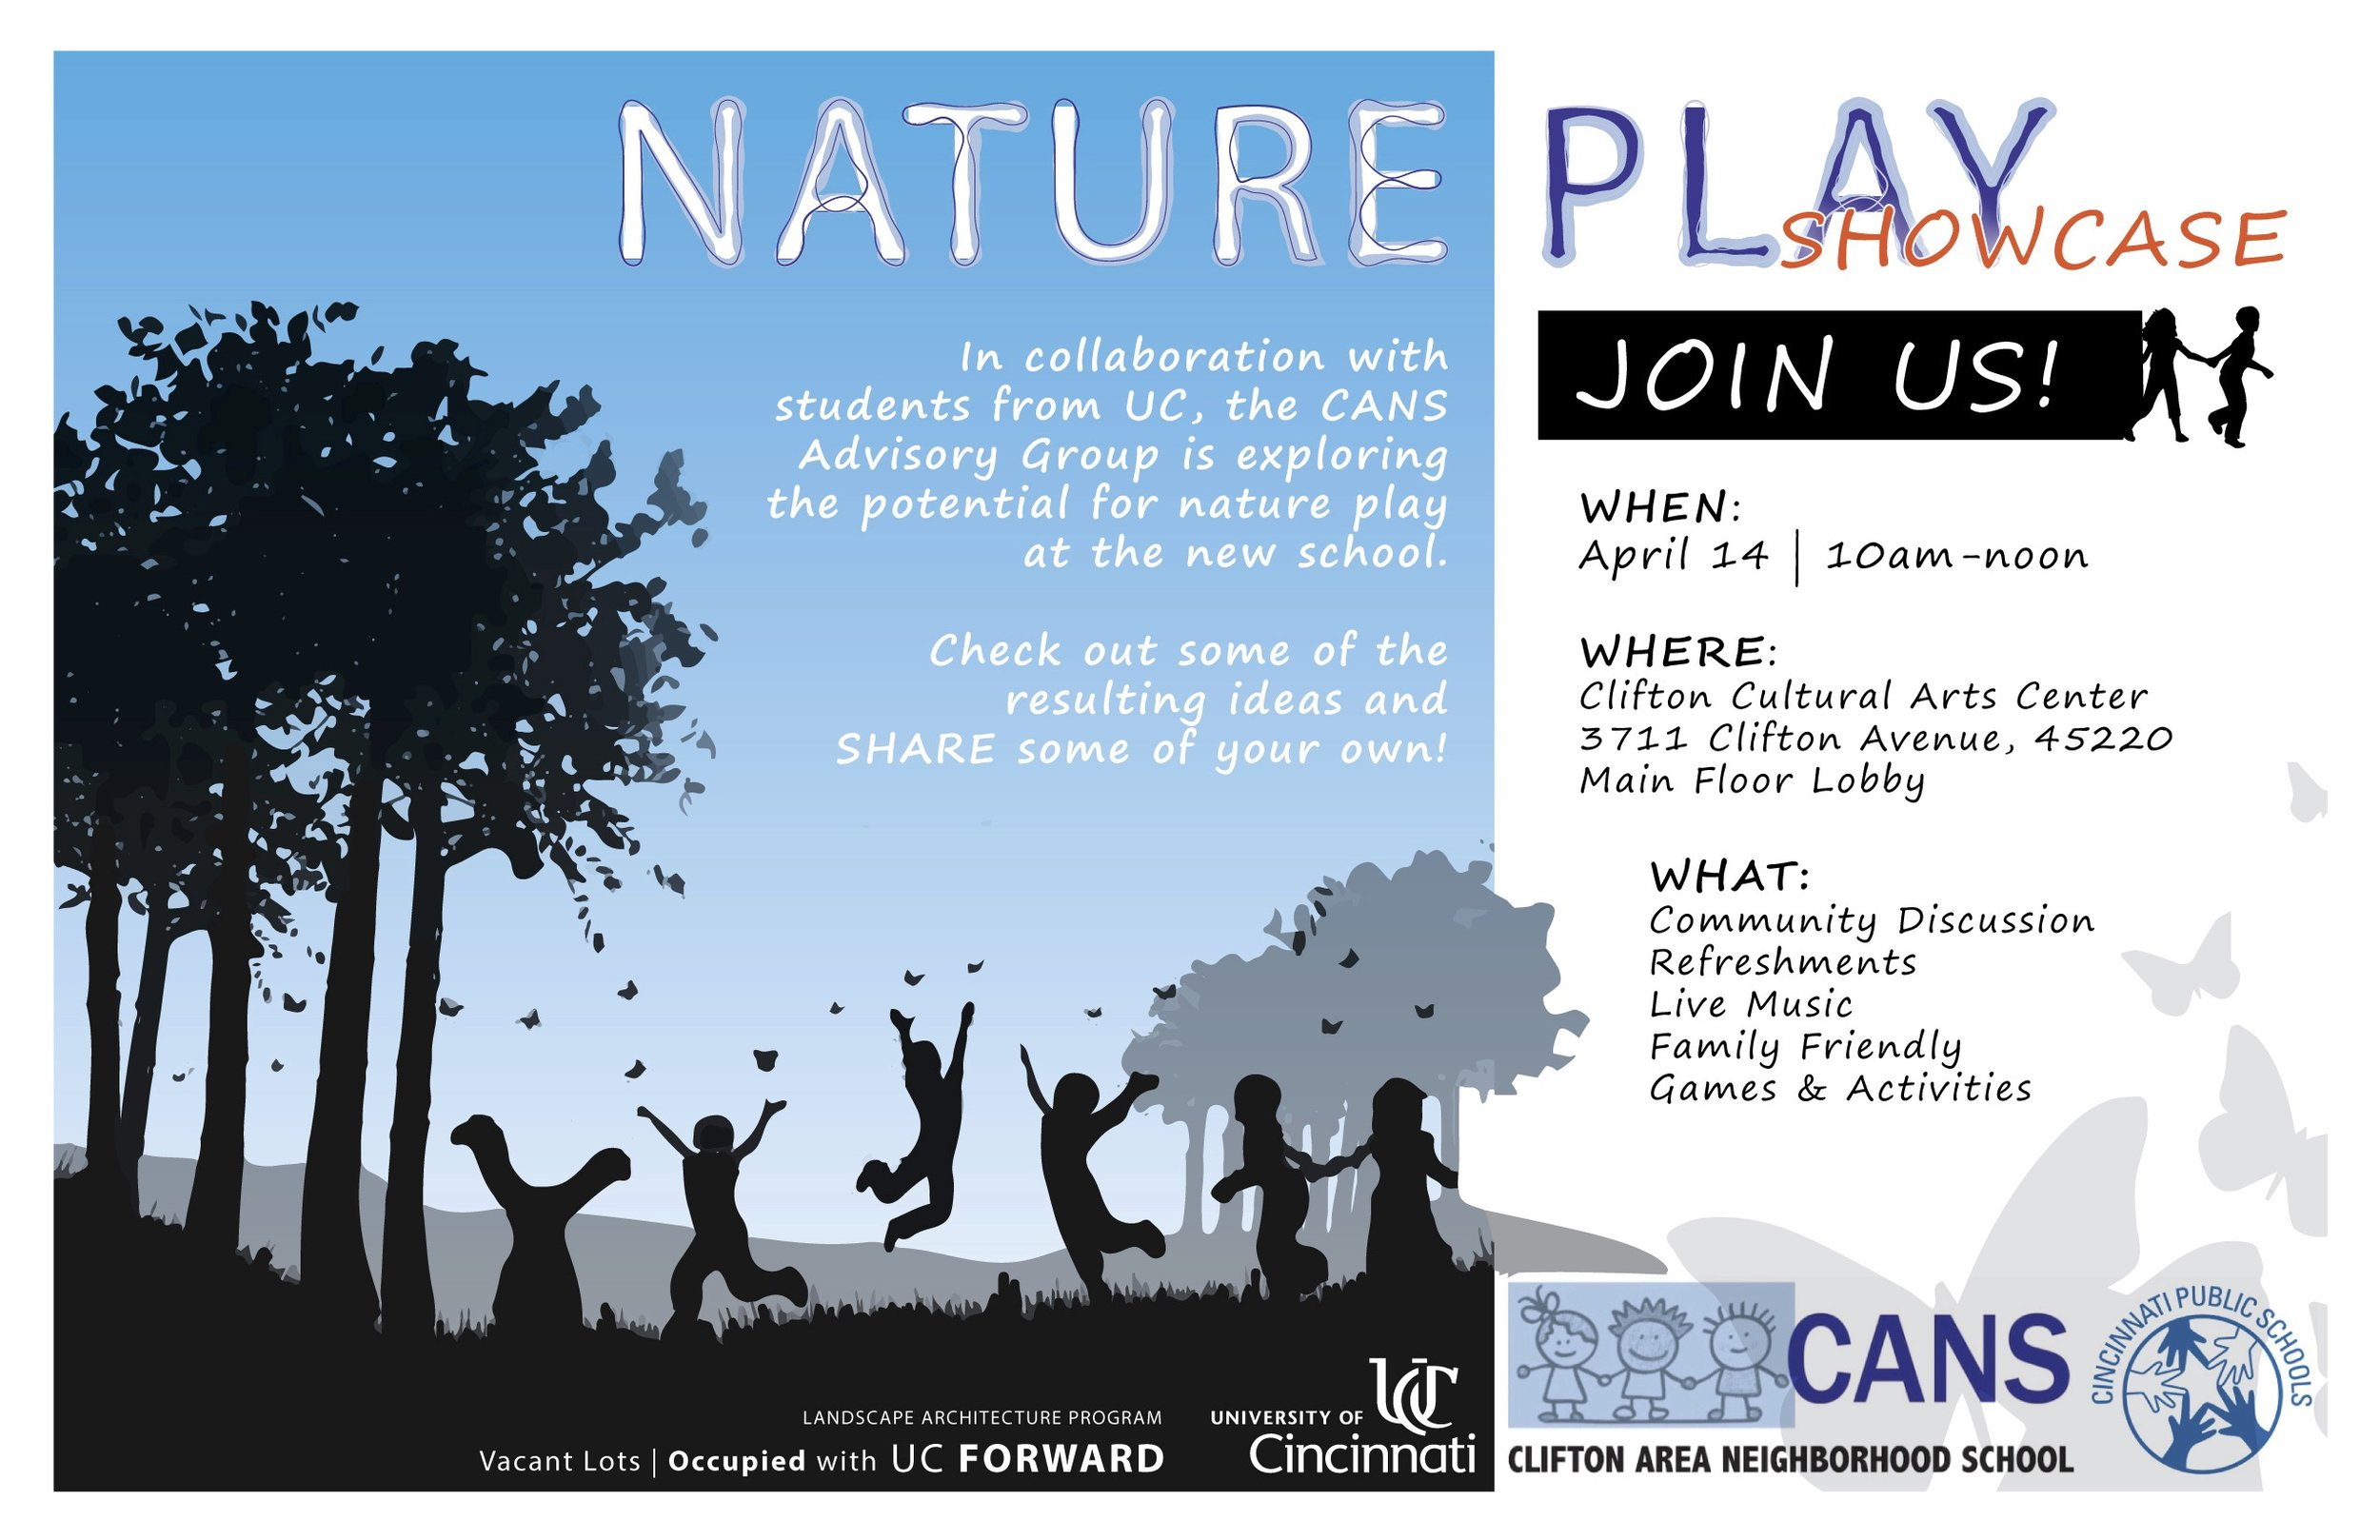 Nature Play_Flyer-Final-1.jpg